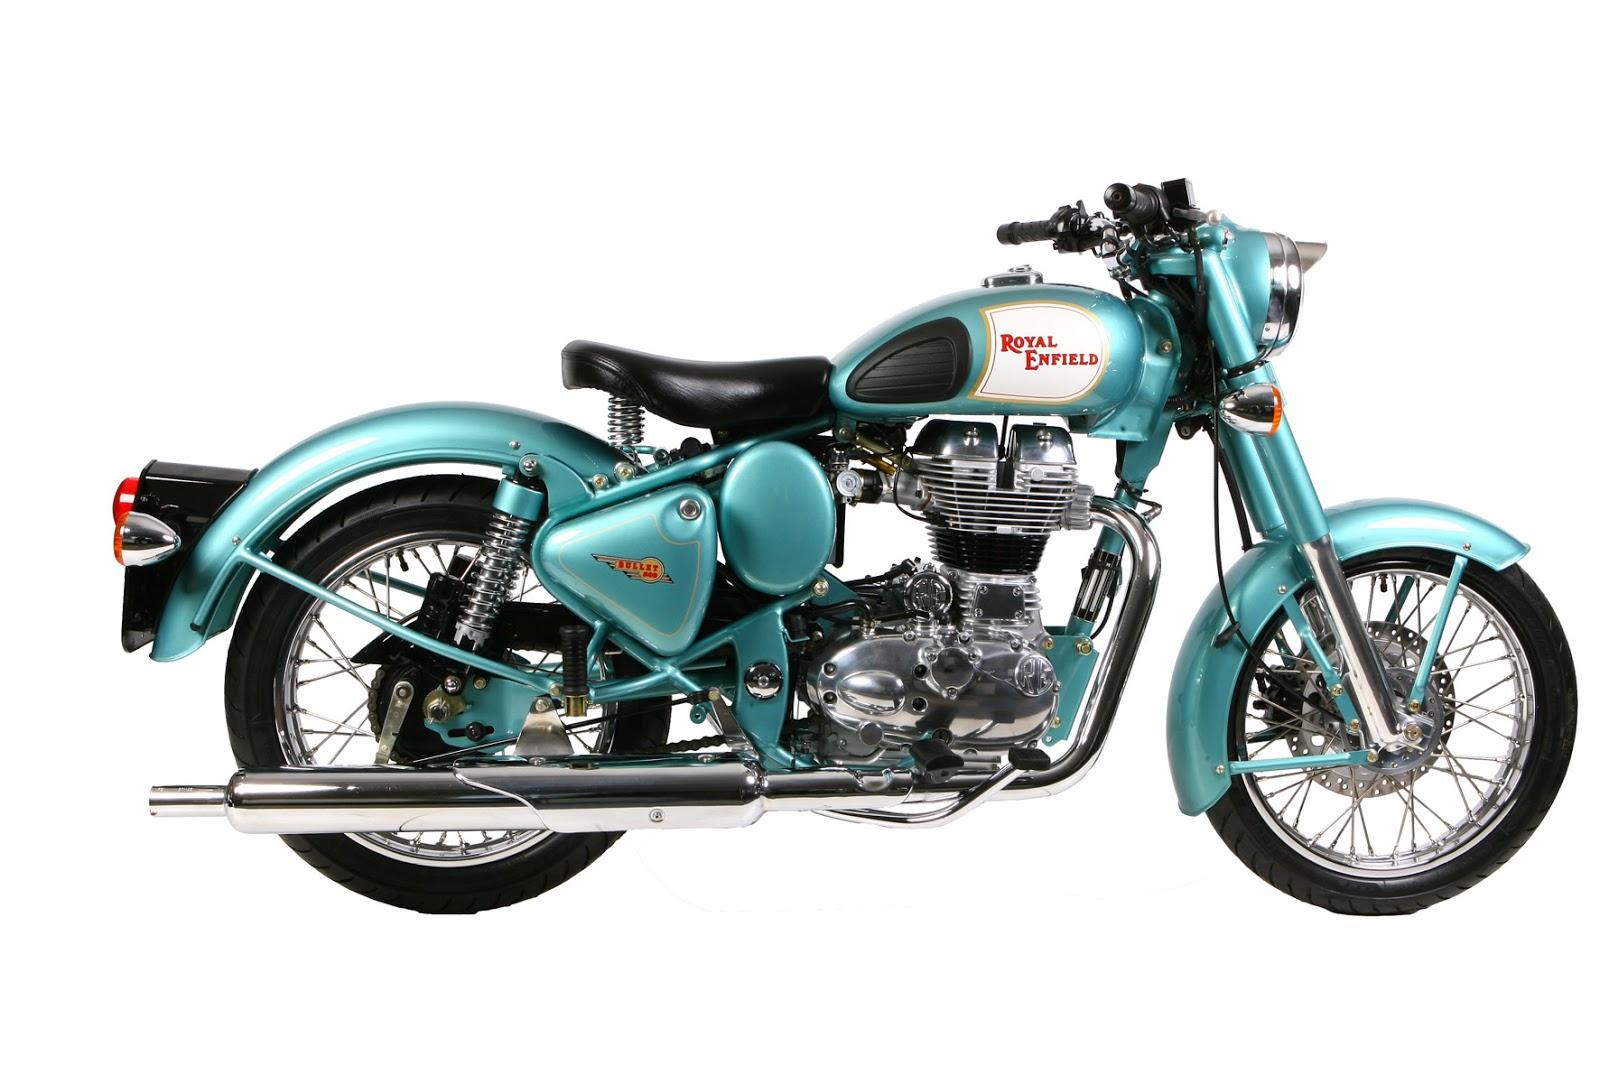 2004 Enfield US Classic 500 #7